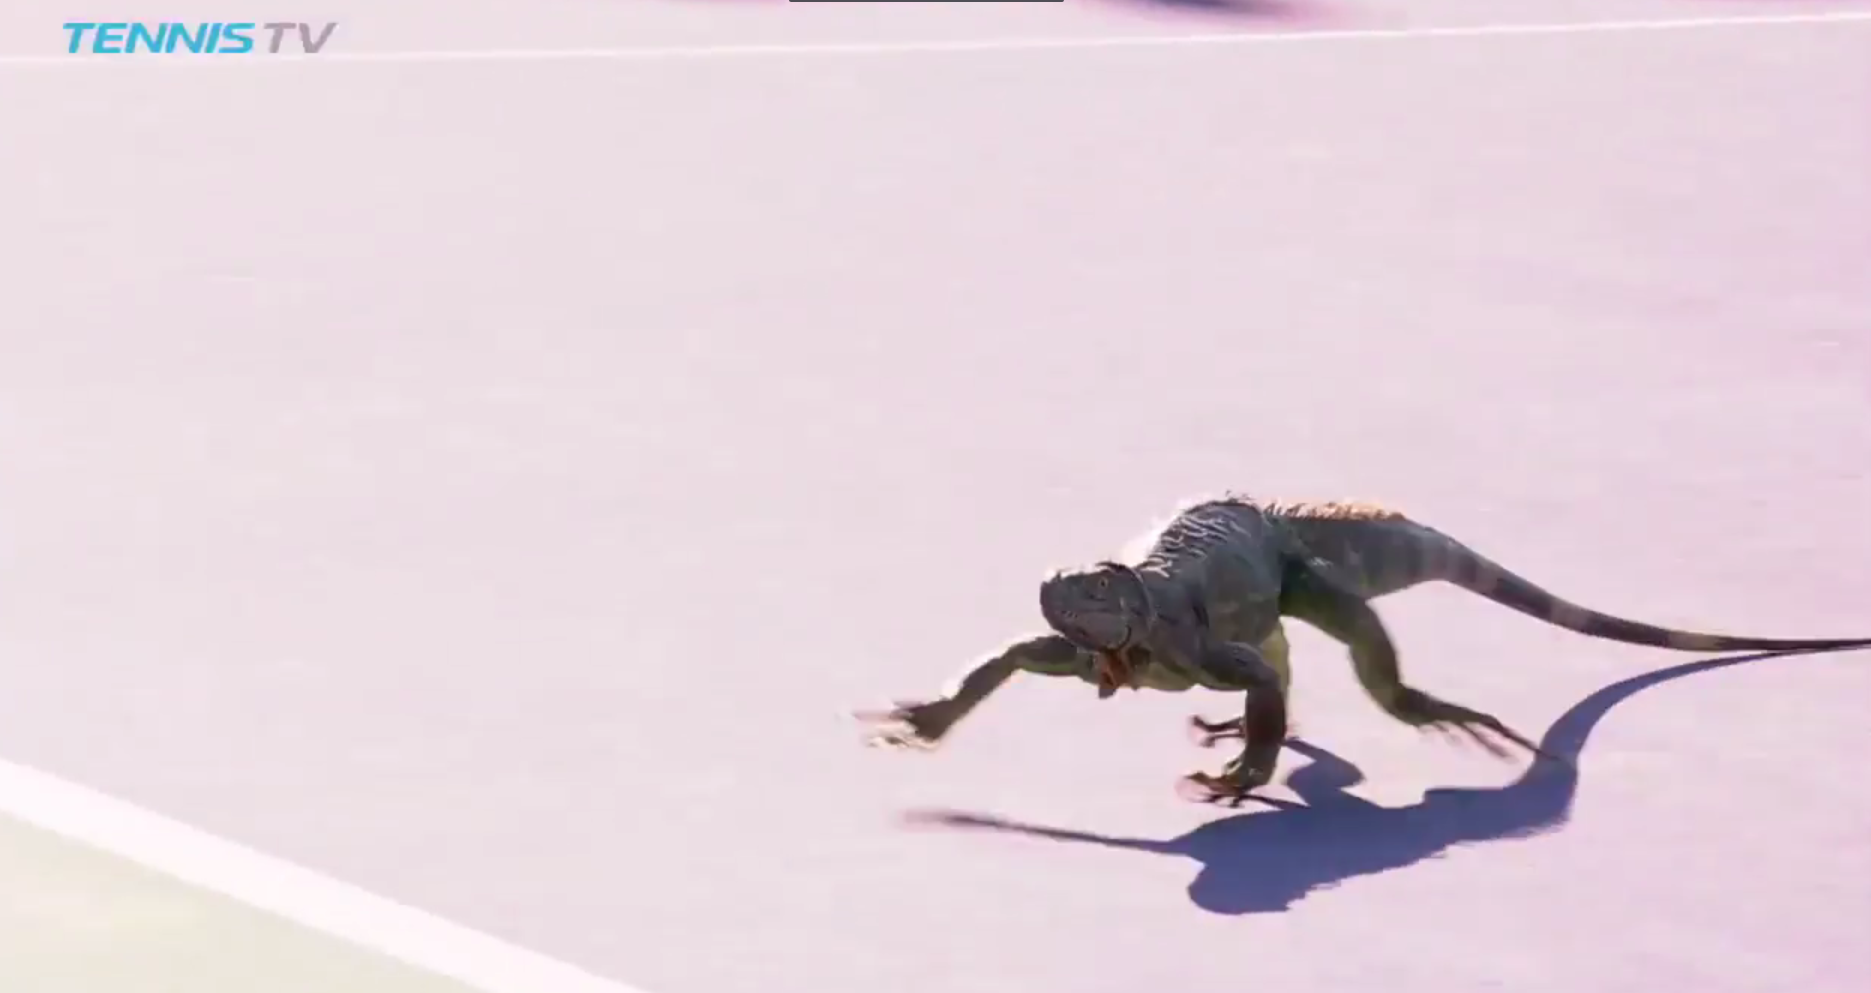 Iguana invades the court during the Miami Open (Tennis TV)